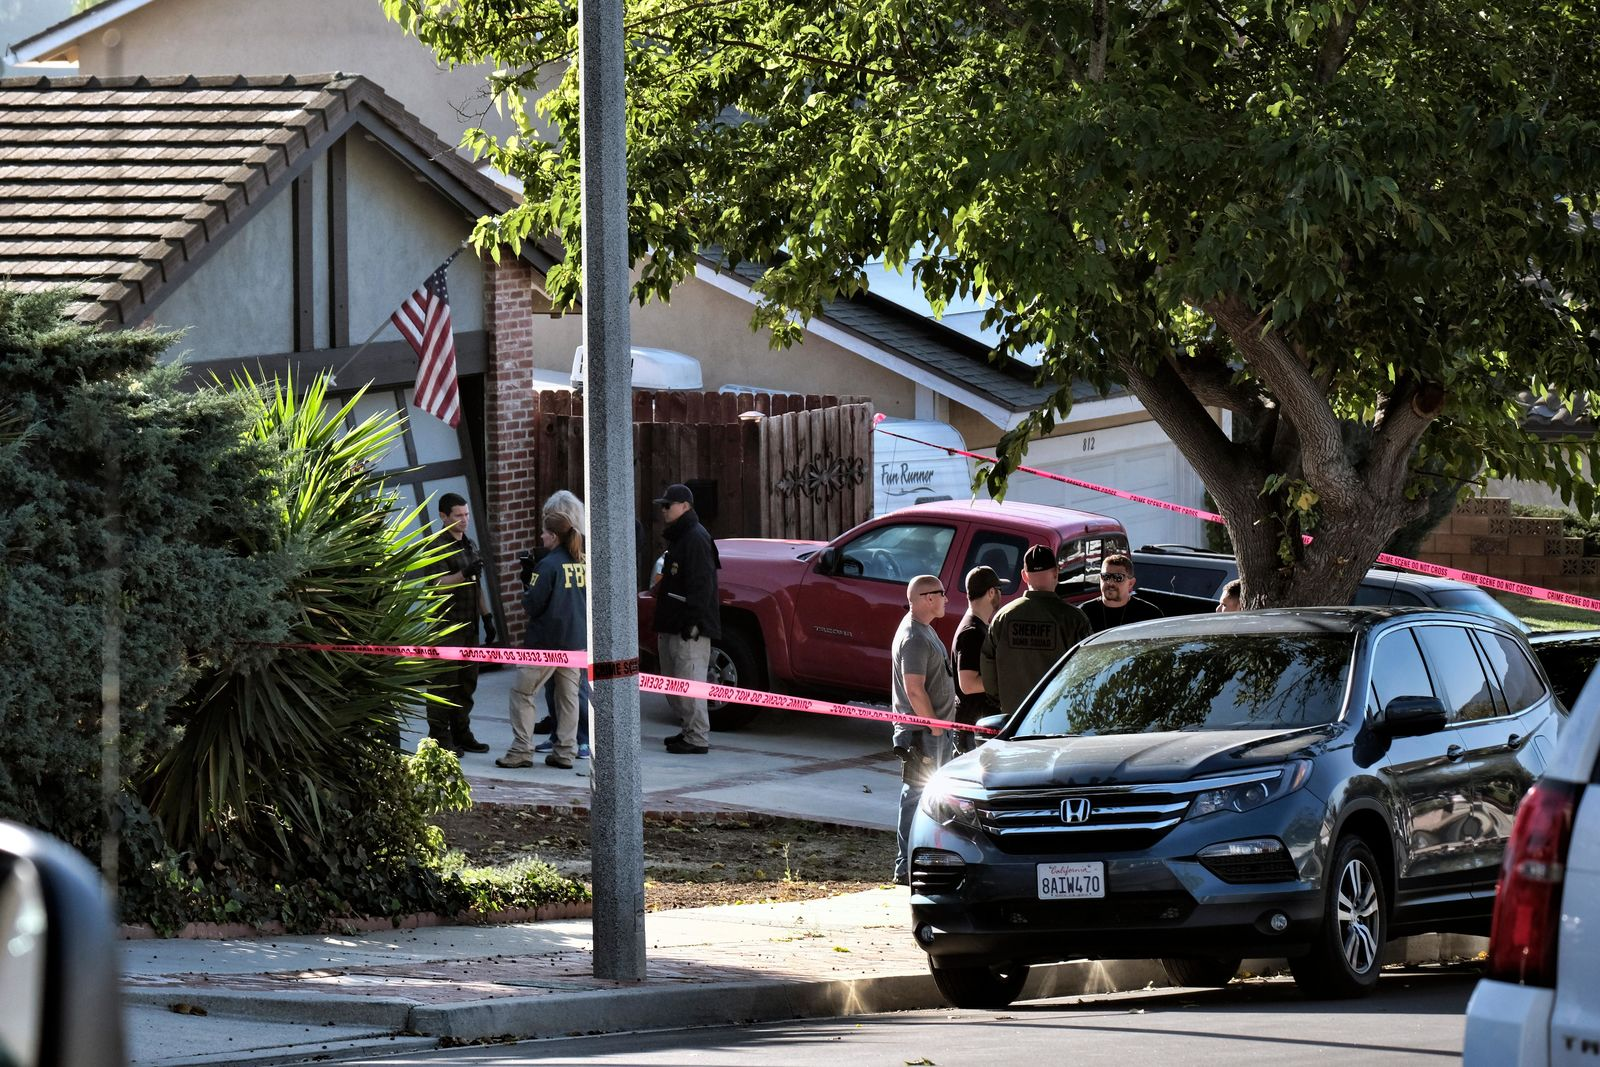 Ventura County Sheriff's deputies and FBI investigators stand outside the house of shooting suspect David Ian Long in Newbury Park, Calif., on Thursday, Nov. 8, 2018. (AP Photo/Richard Vogel)